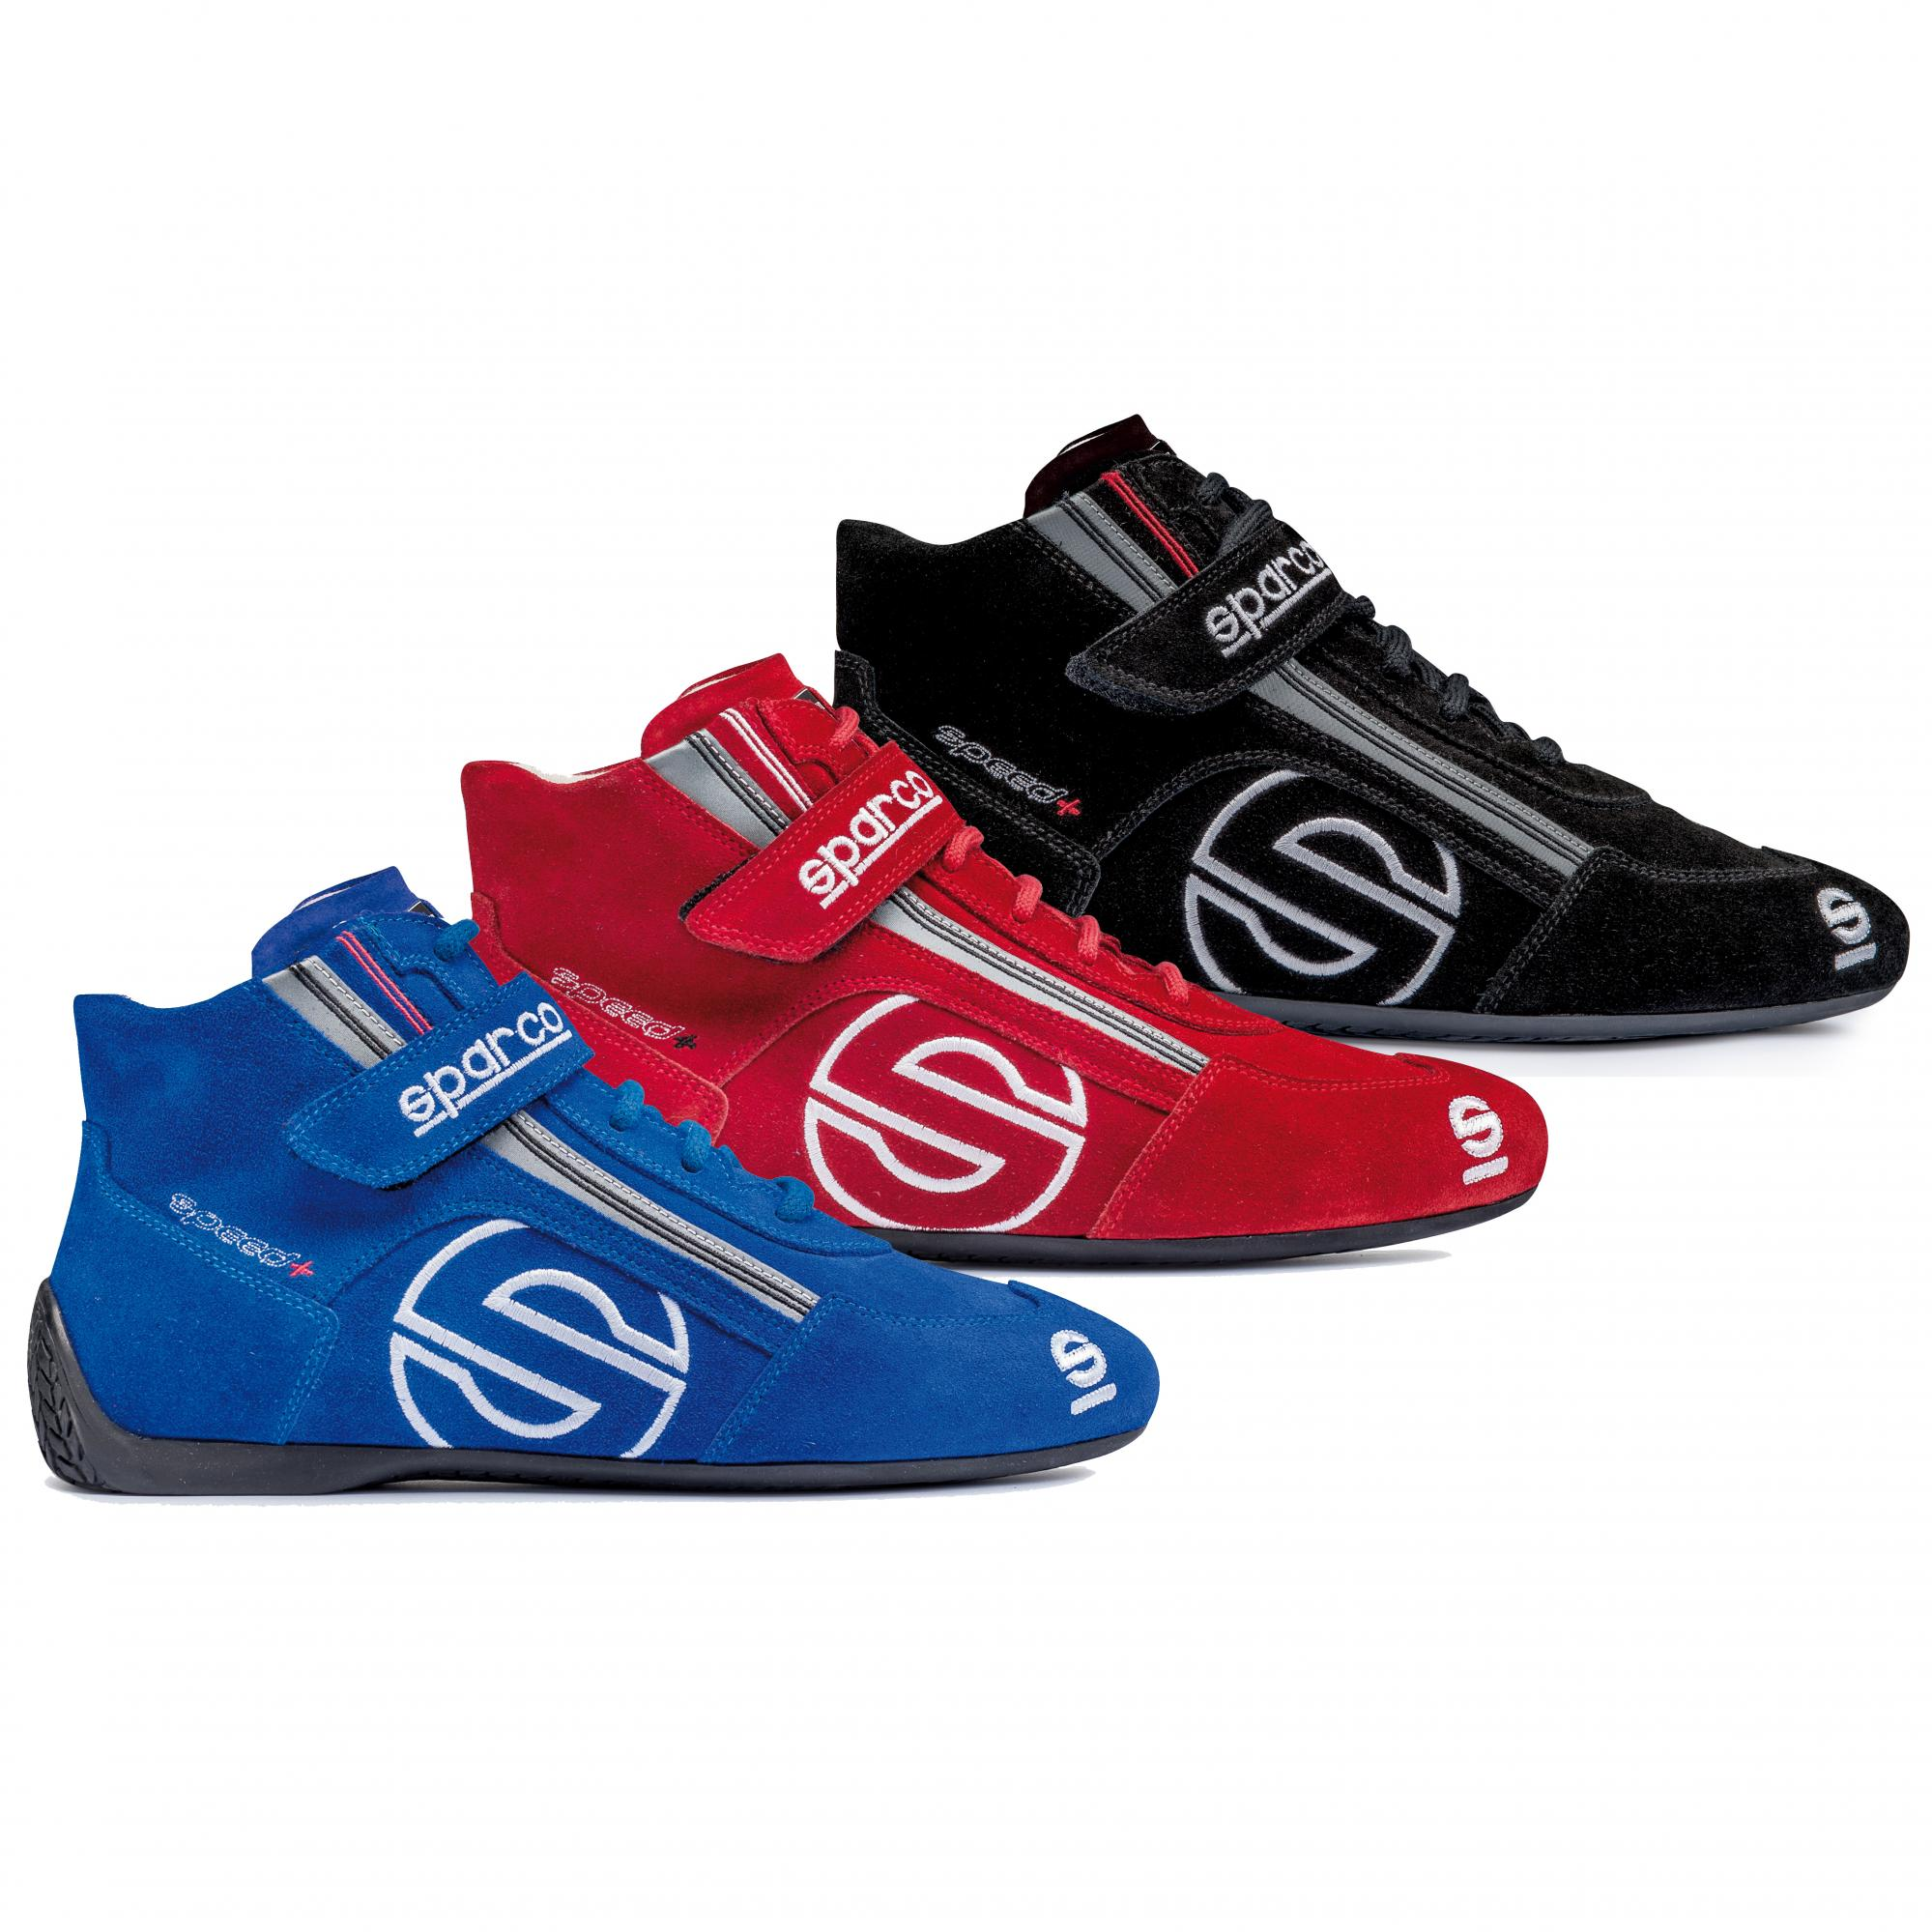 Sparco Racing Sparco Speed Sl-3 Race Boots